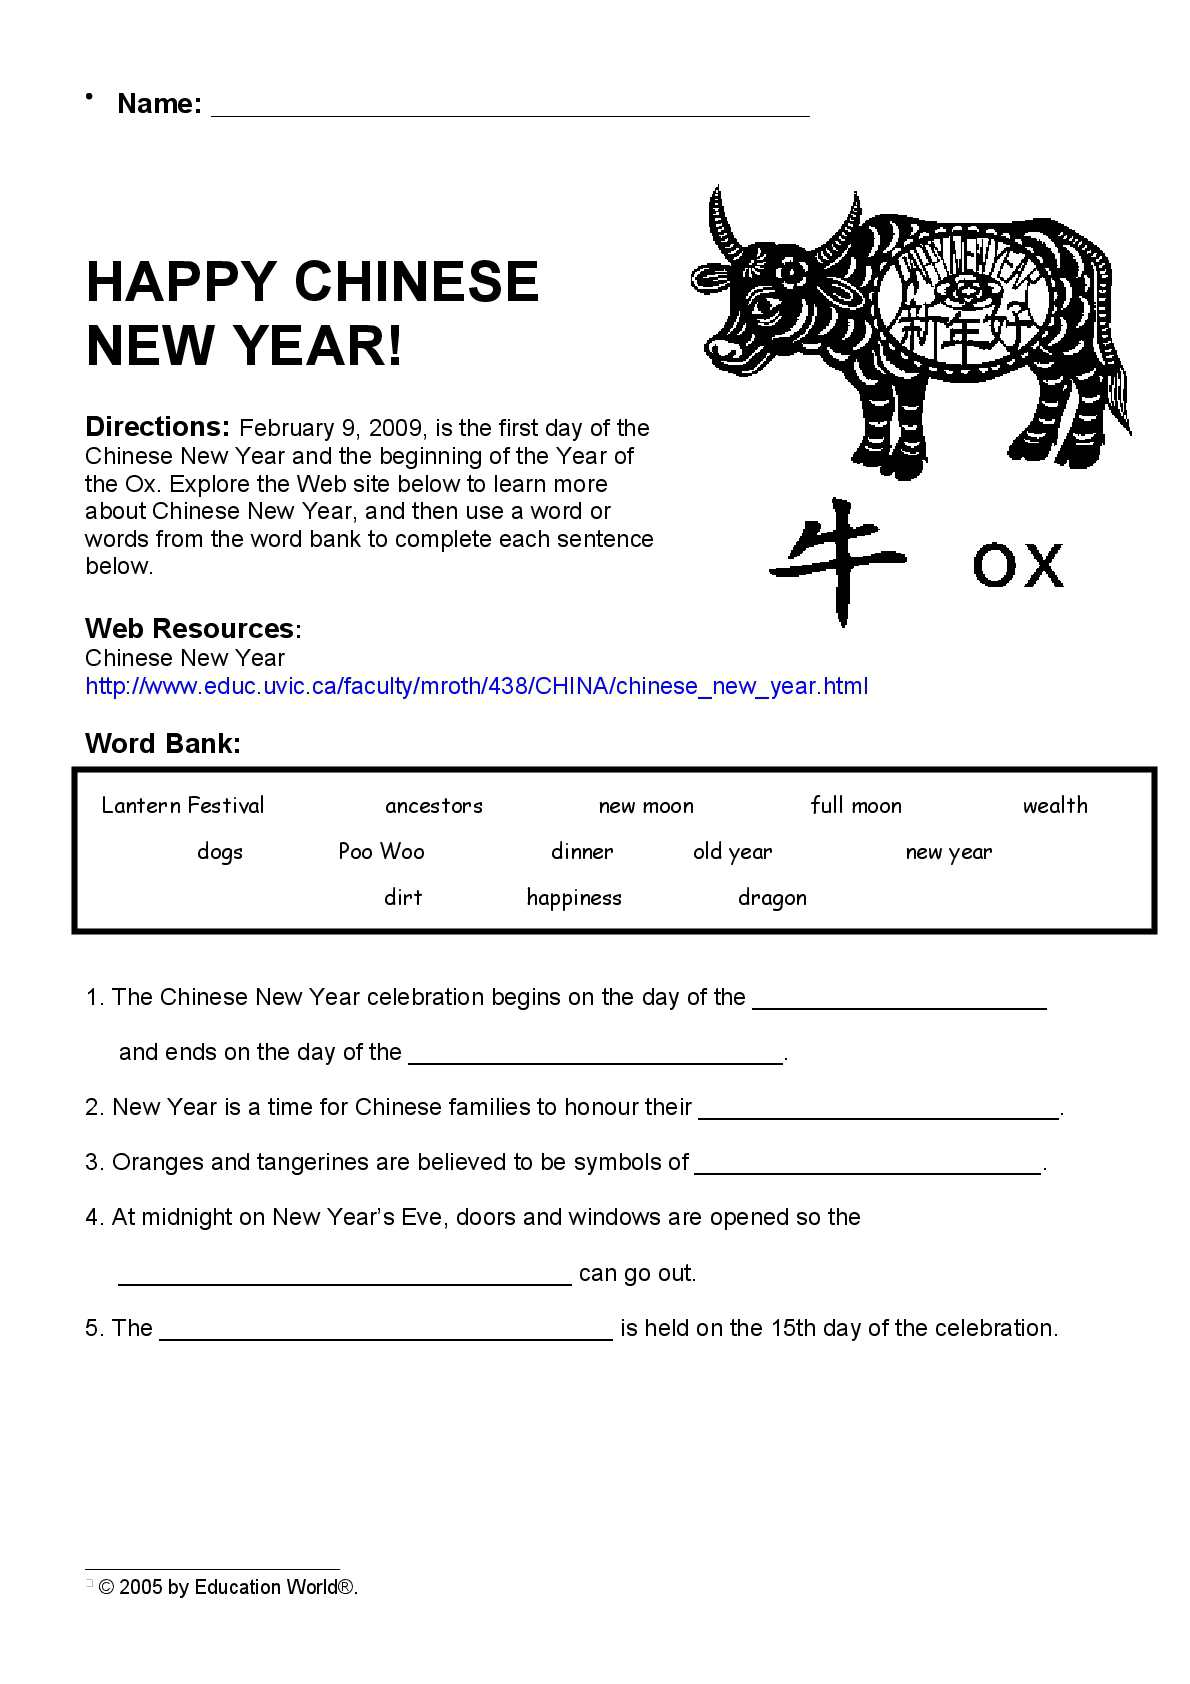 Worksheet Chinese Lantern